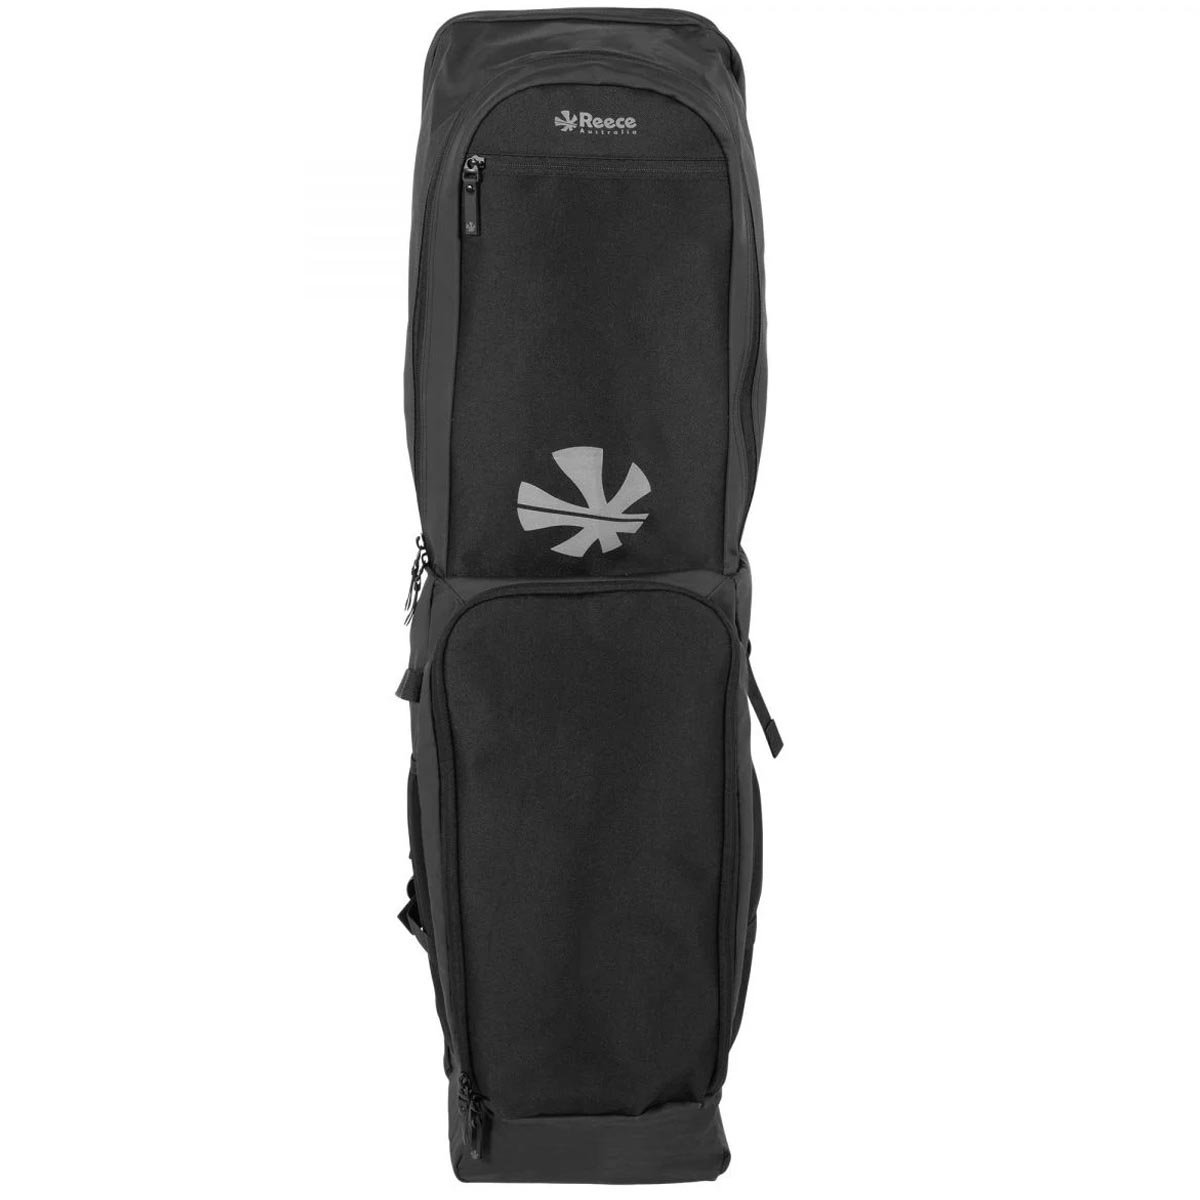 Reece DERBY II STICK BAG